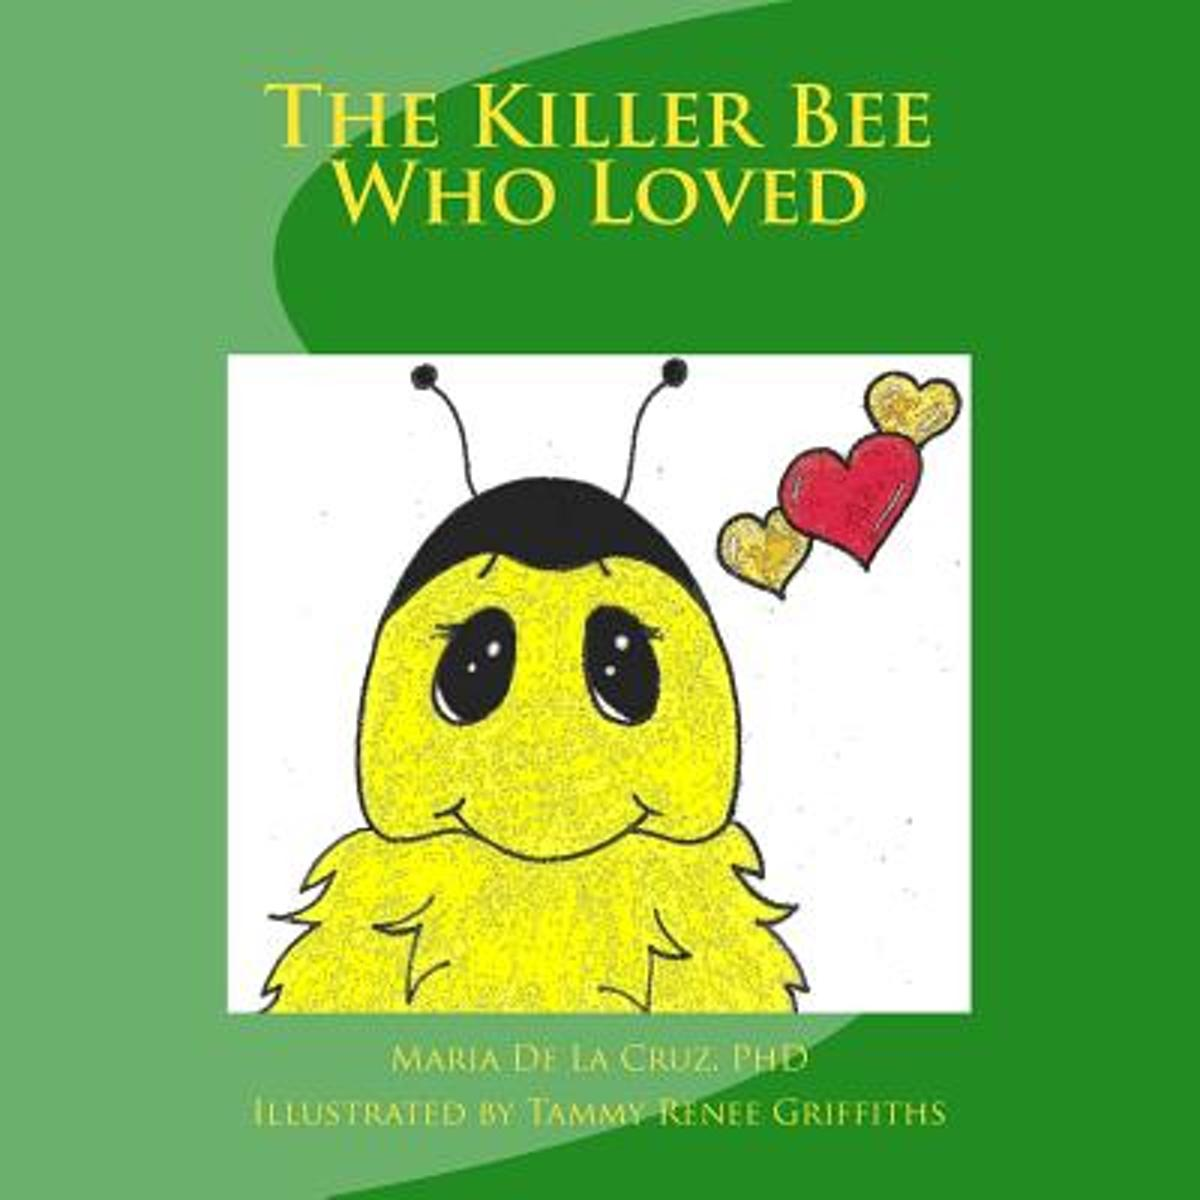 The Killer Bee Who Loved